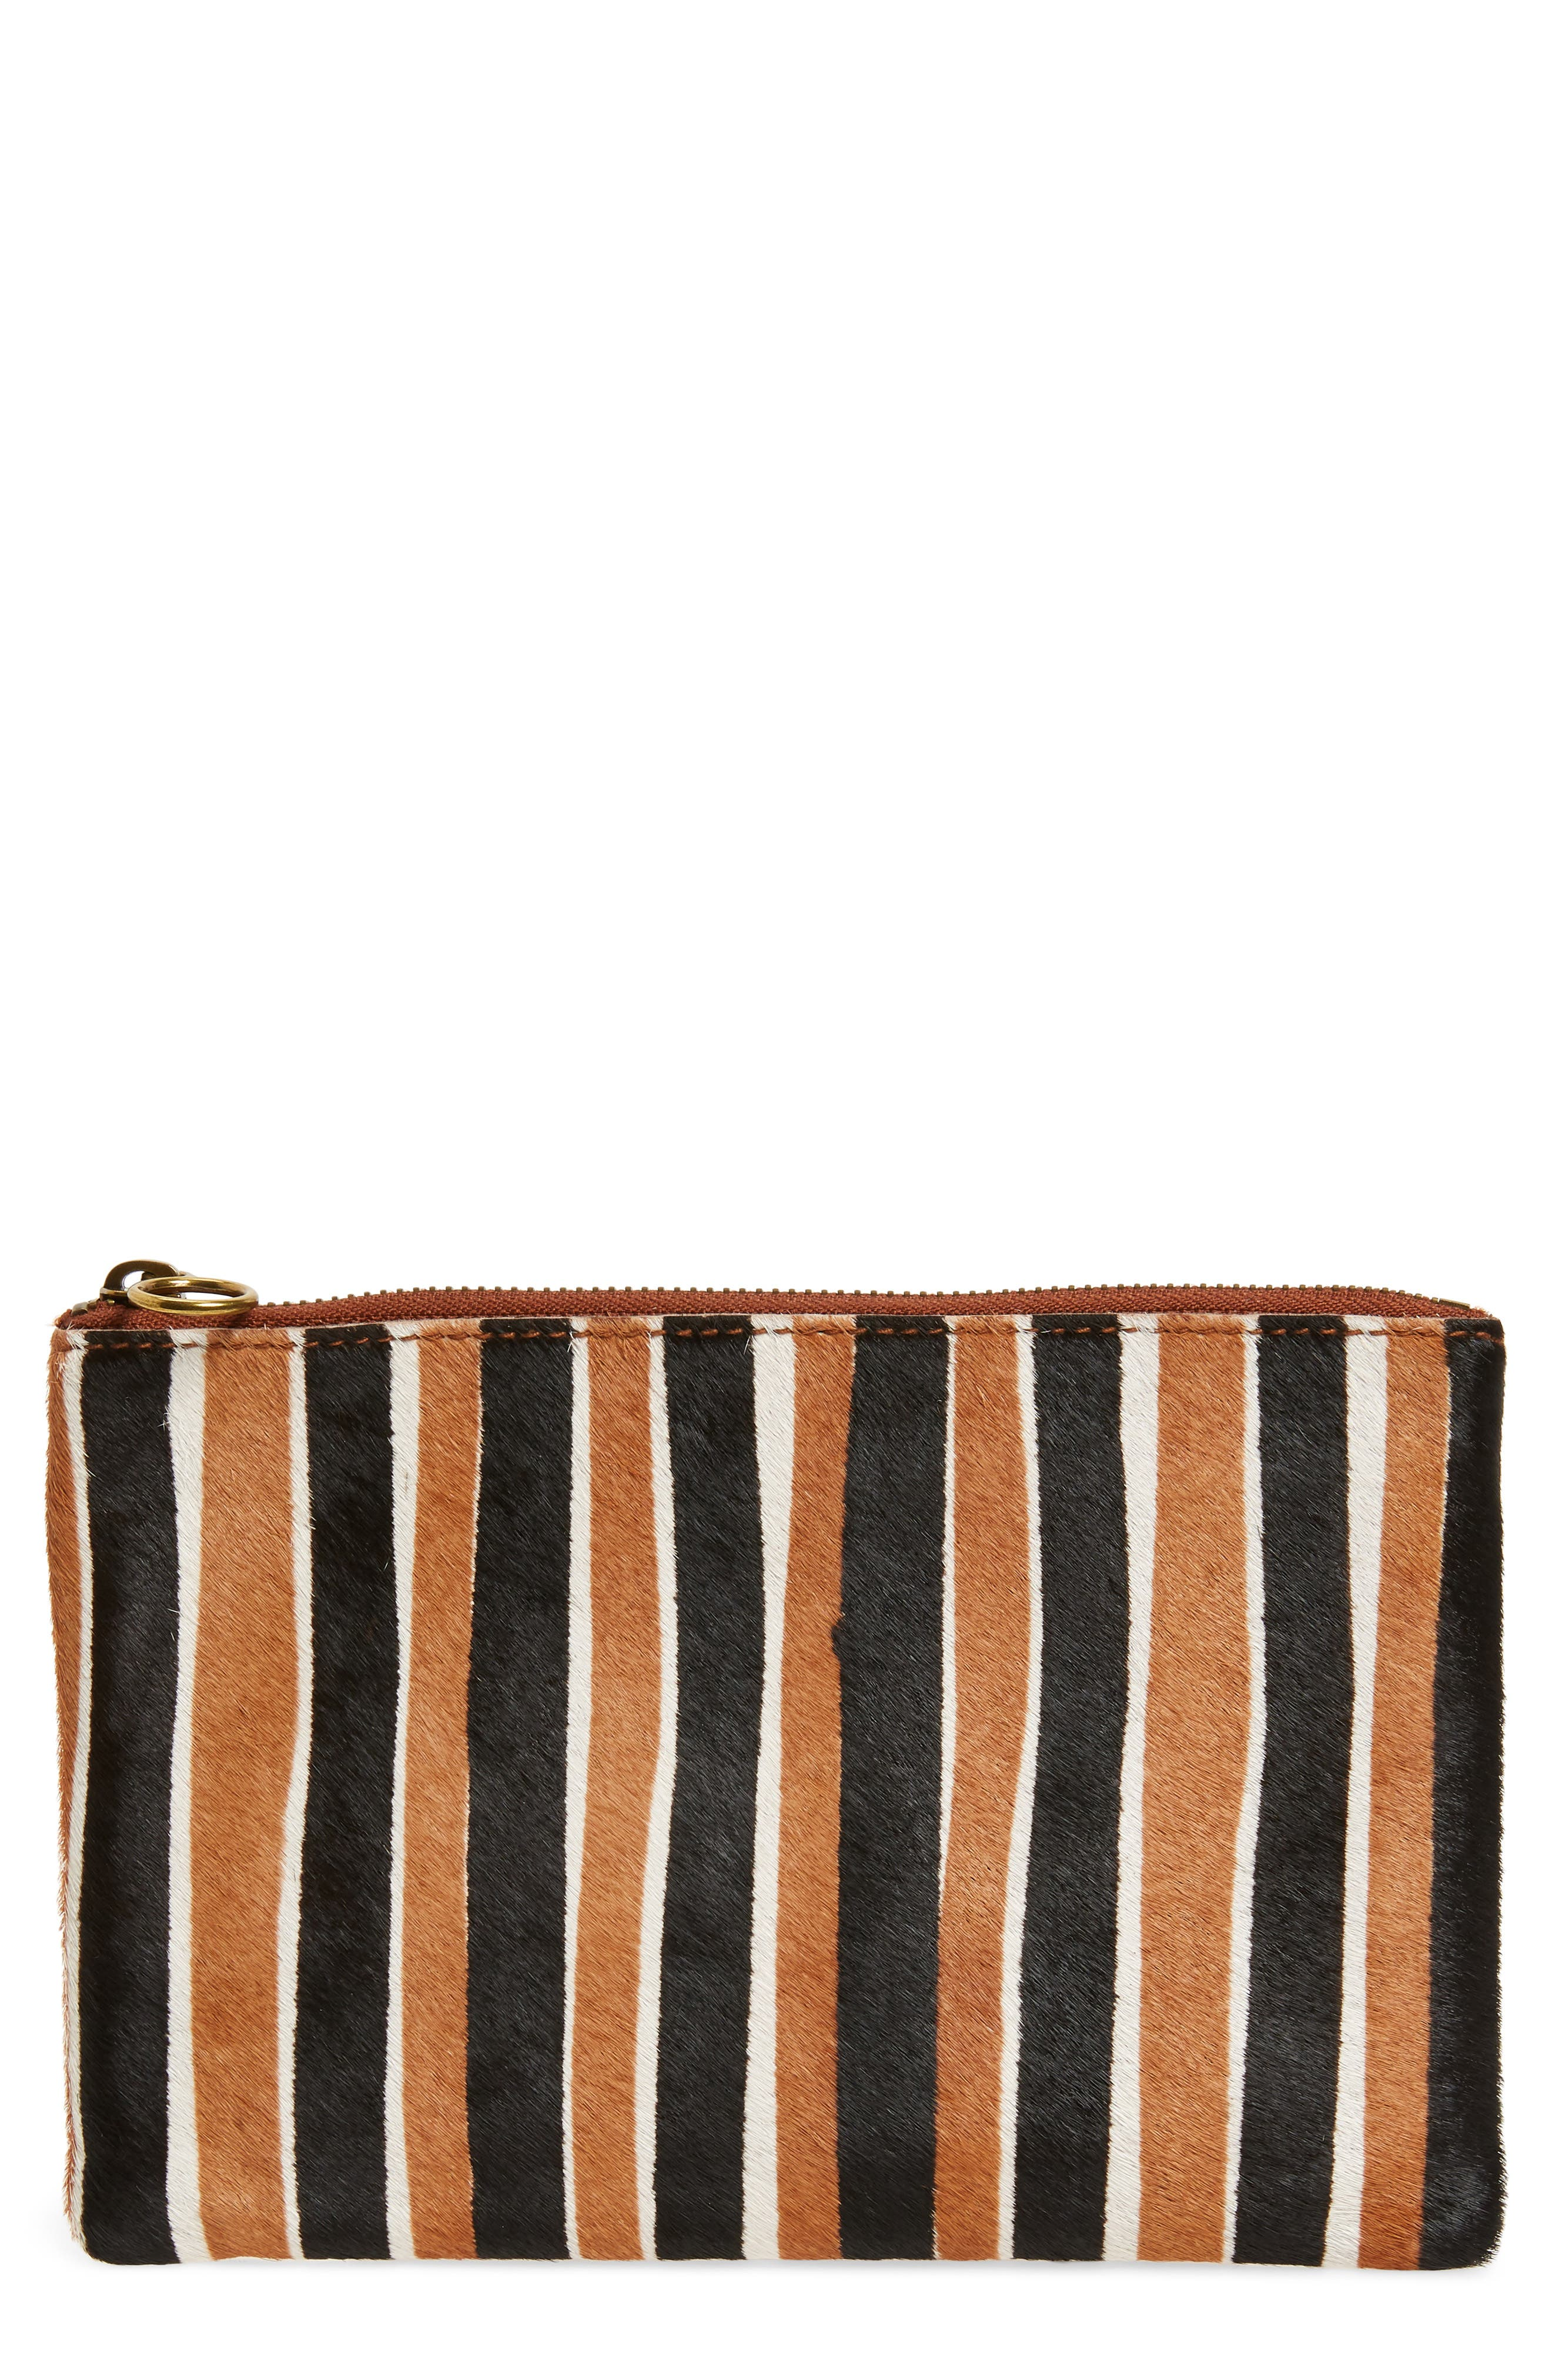 The Leather Pouch Clutch in Genuine Calf Hair,                         Main,                         color, ACORN MULTI